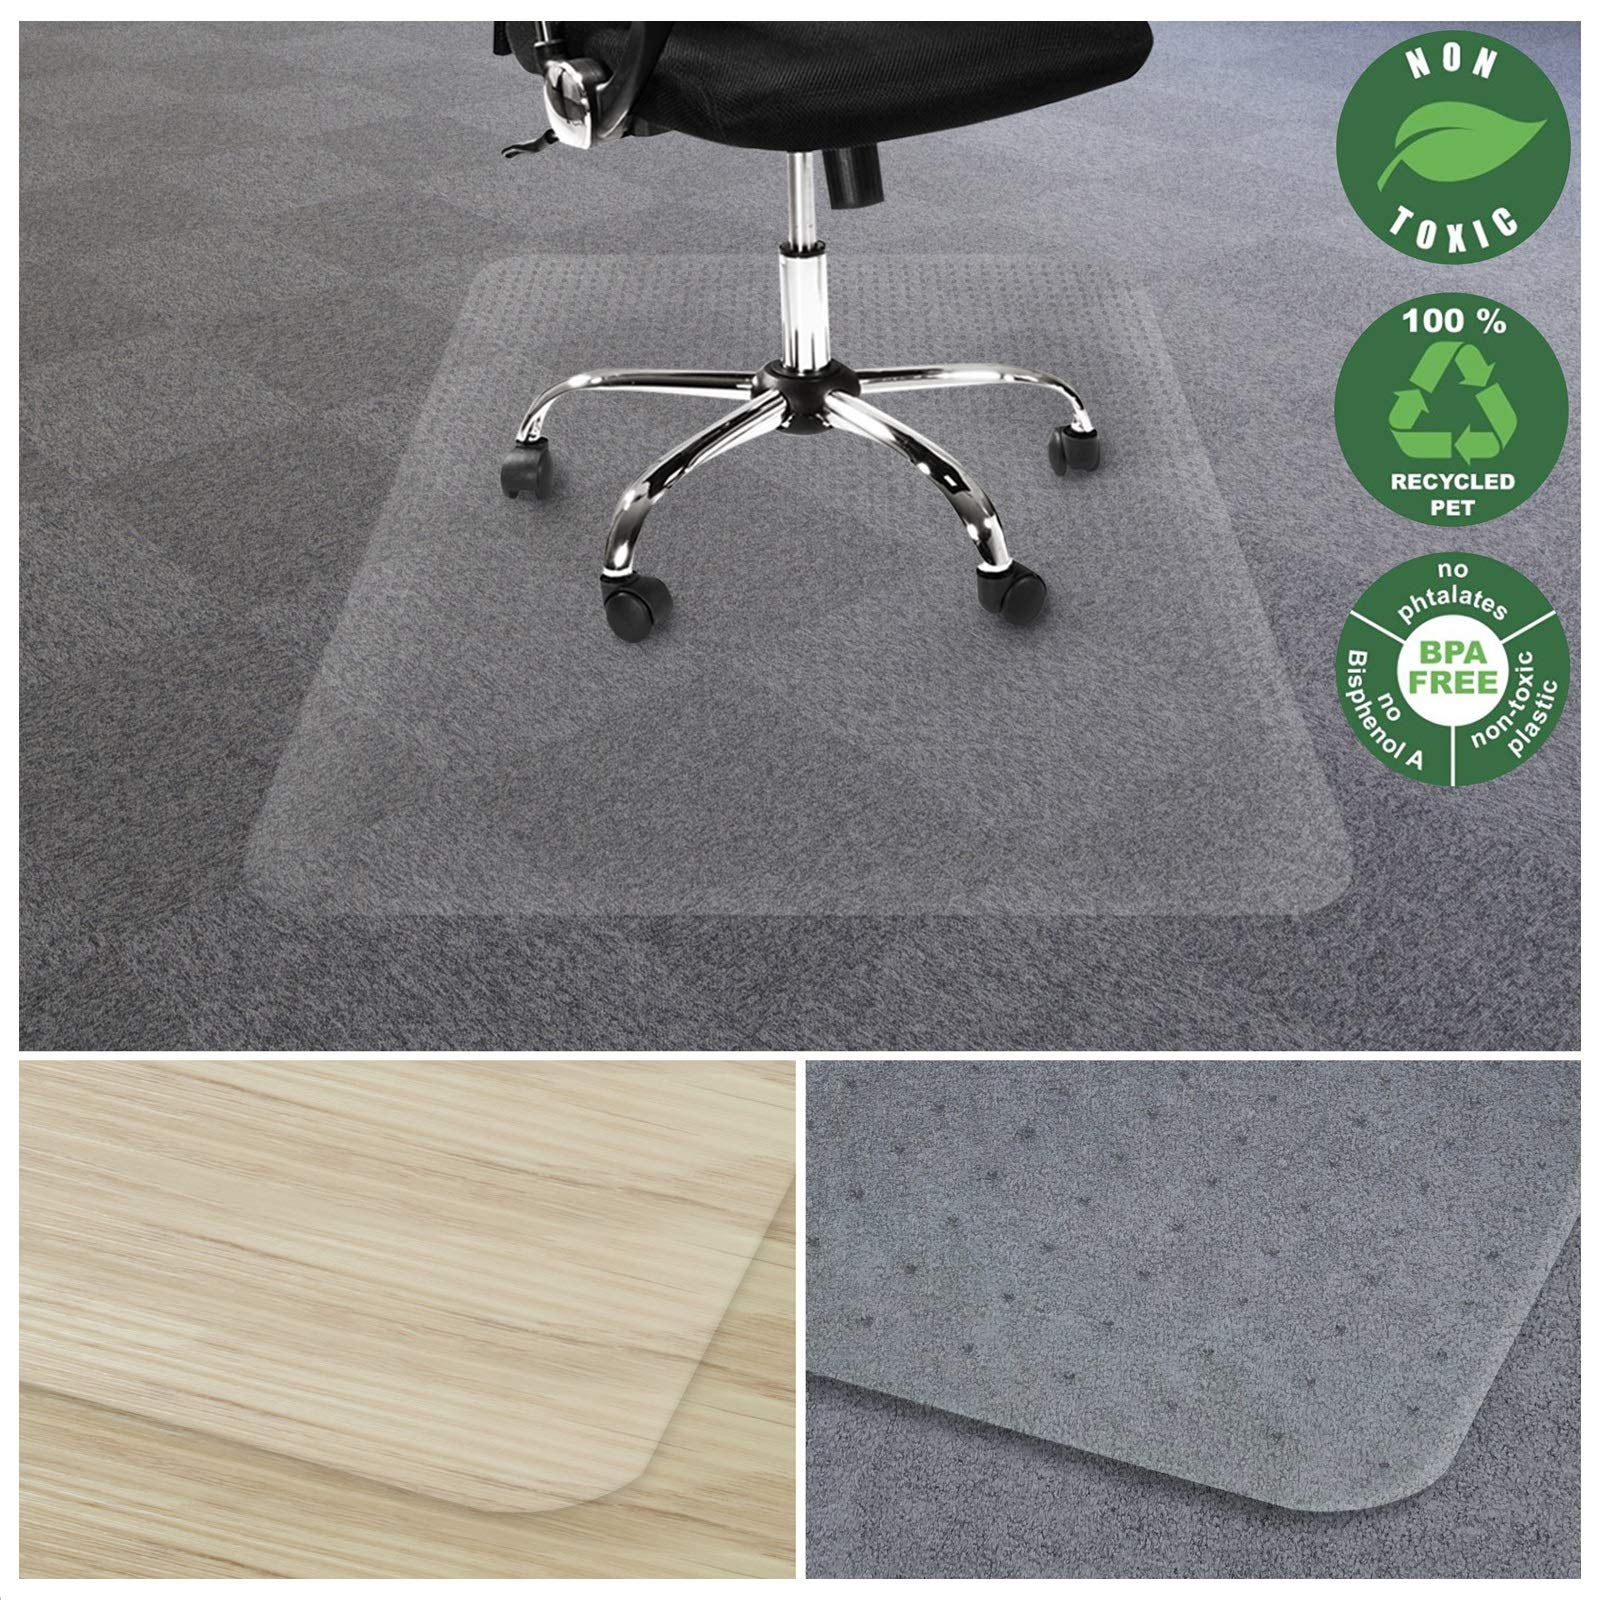 Office Marshal Chair Mat for Carpet | Eco-Friendly Series Chair Floor Protector | 100% Recycled (PET) Floor Mat for Office or Home Use | Multiple Sizes | Translucent - 40'' x 48''